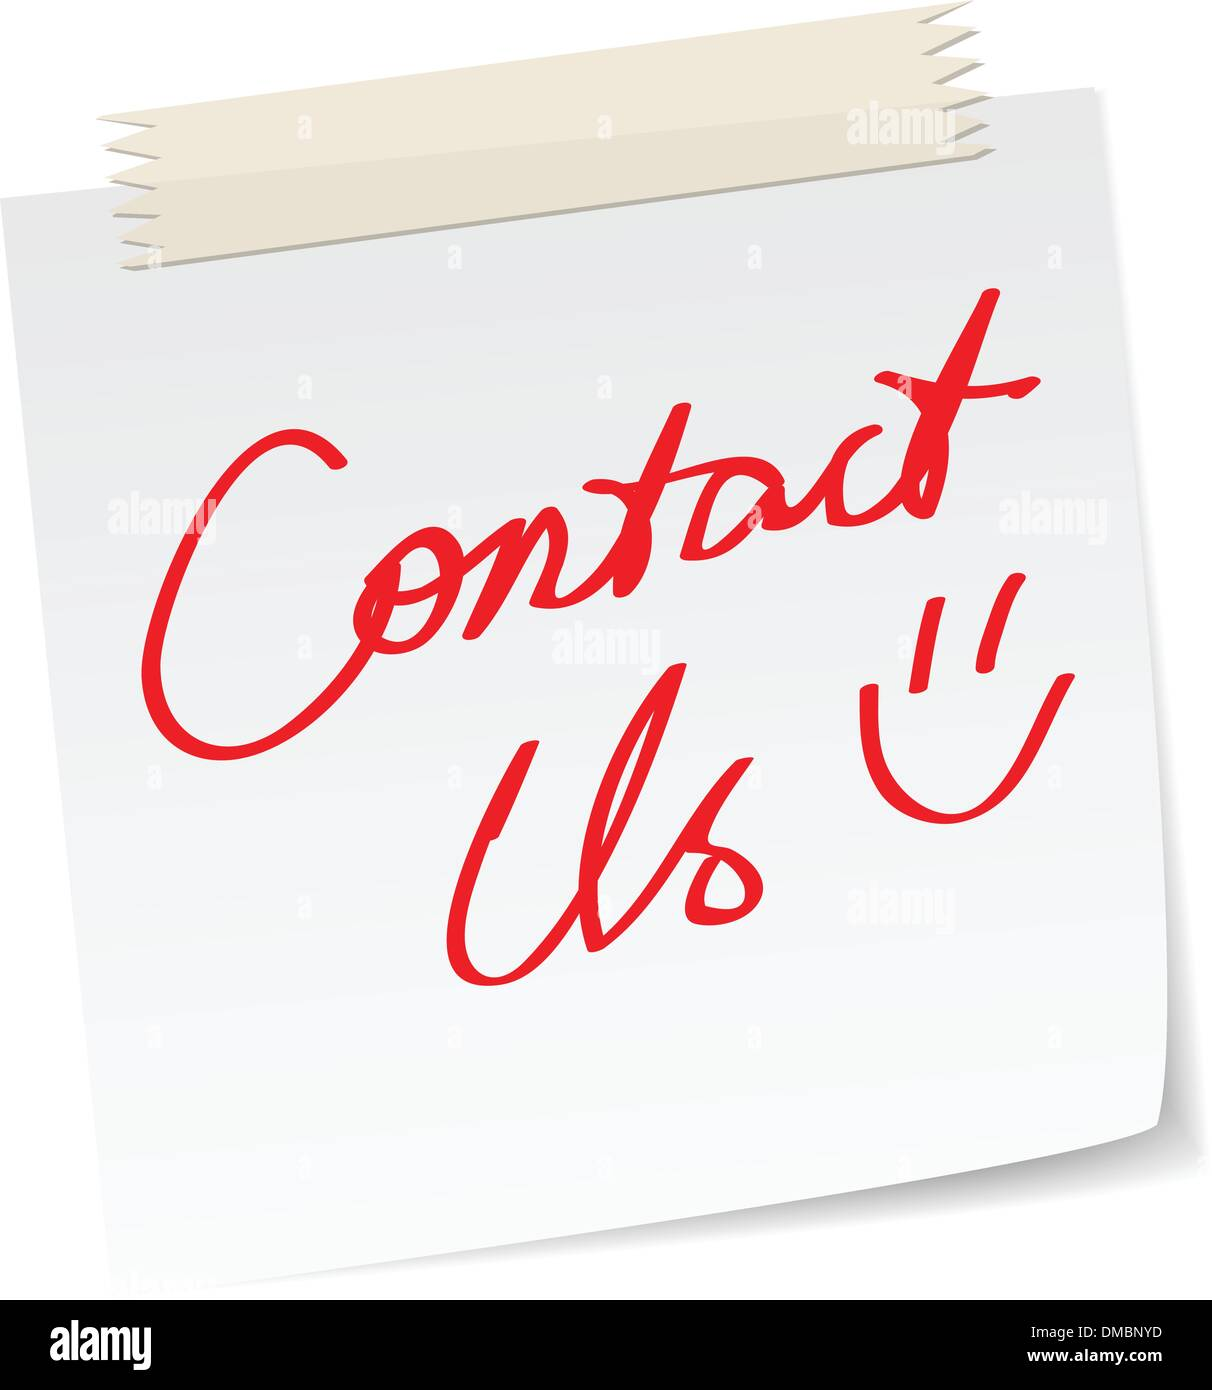 contact us message - Stock Image